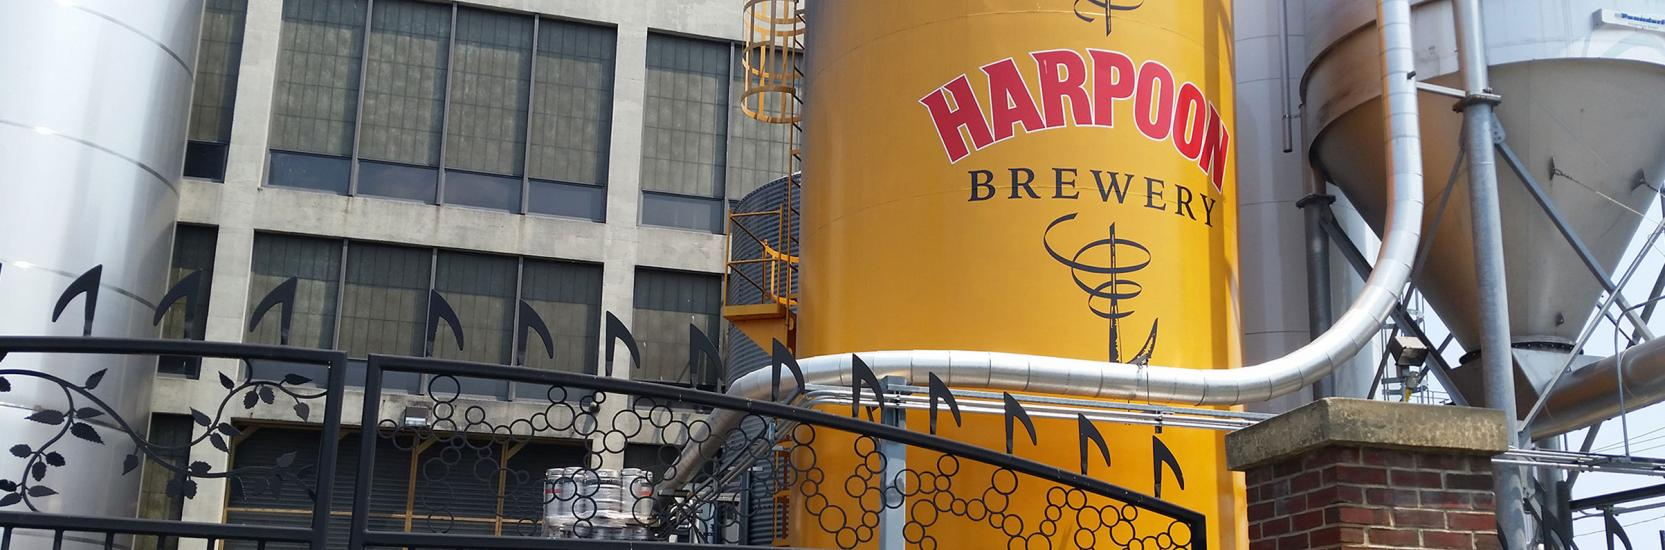 Harpoon Brewery, proudly employee-owned since 1992.